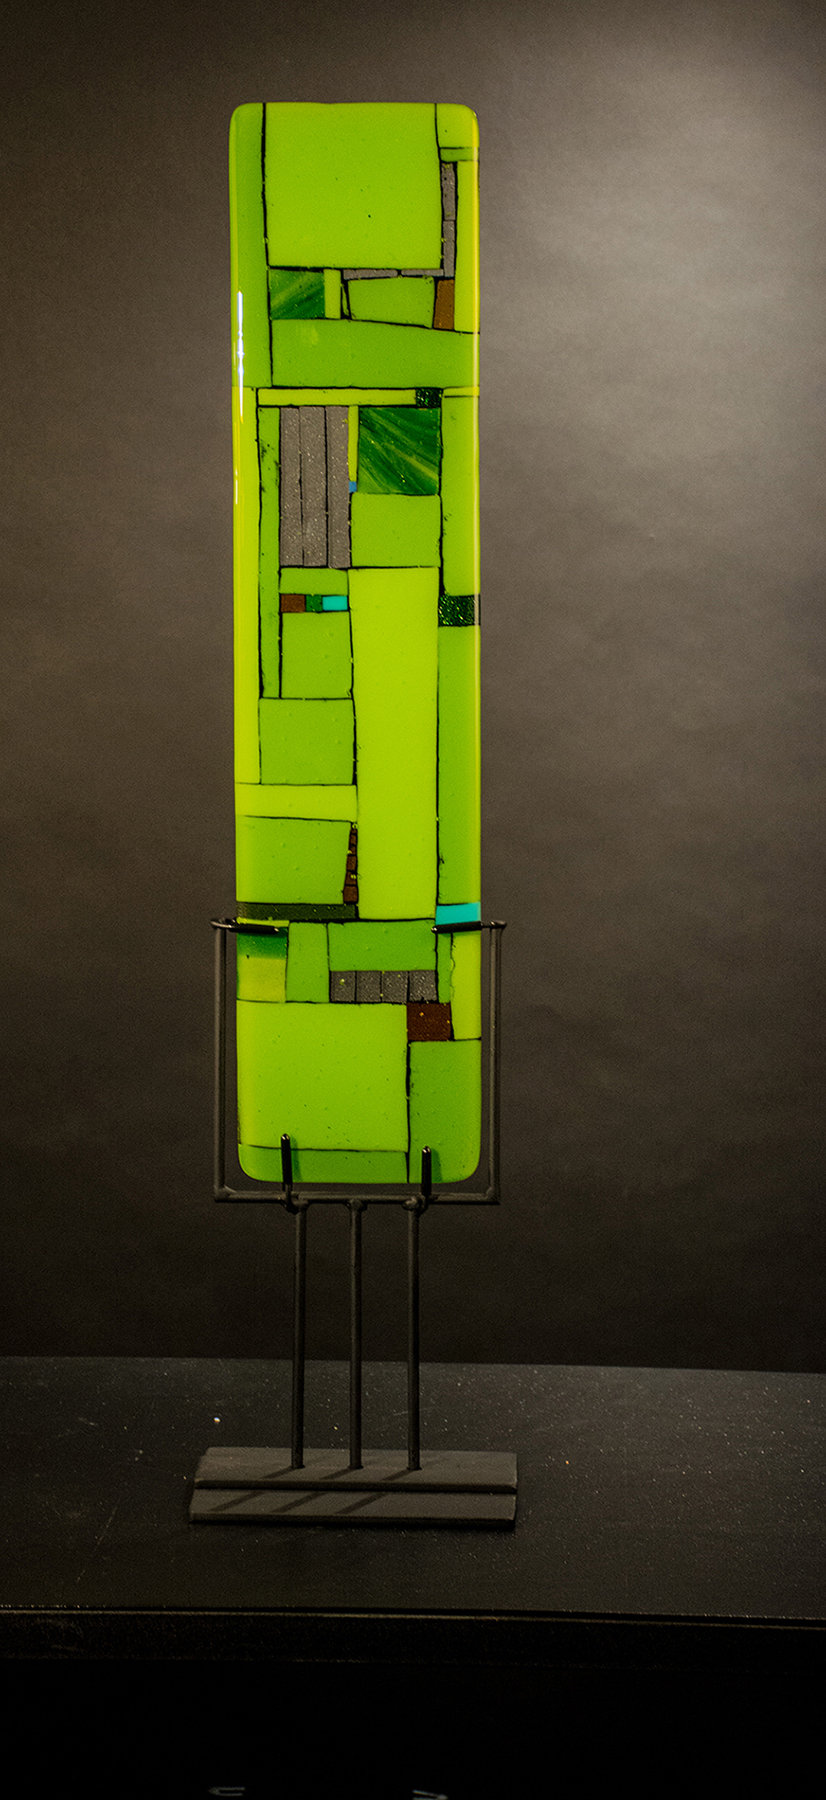 Windows Green - Art Glass Sculpture - by Meg Branzetti and Vicky Kokolski